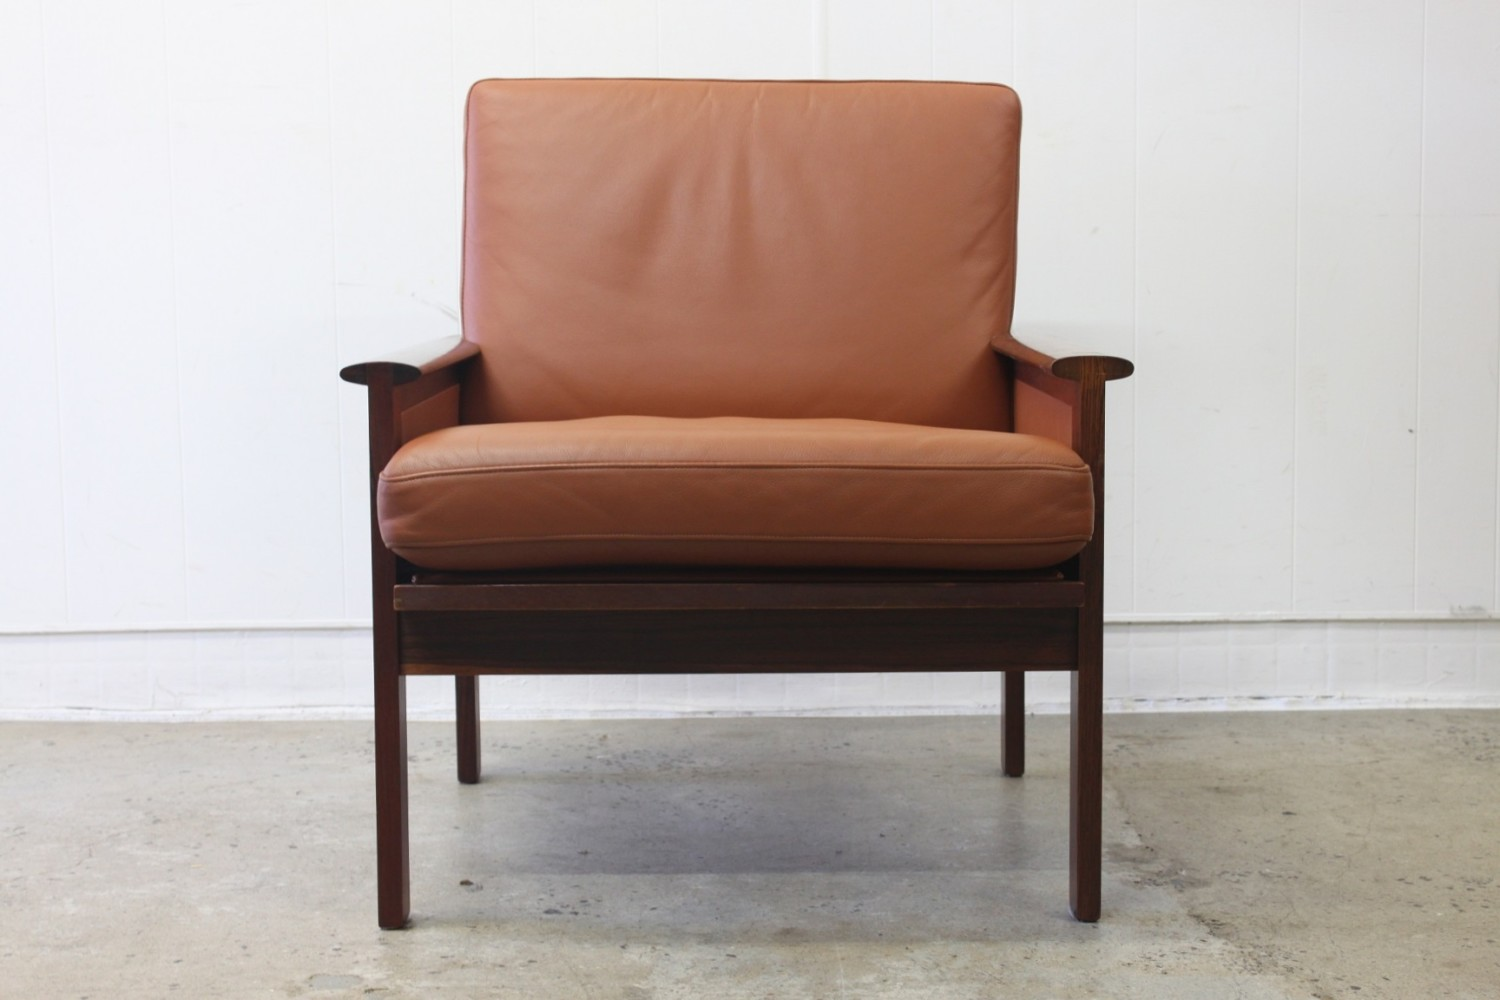 Tan Leather Arm Chairs by Illum WikkelsØ